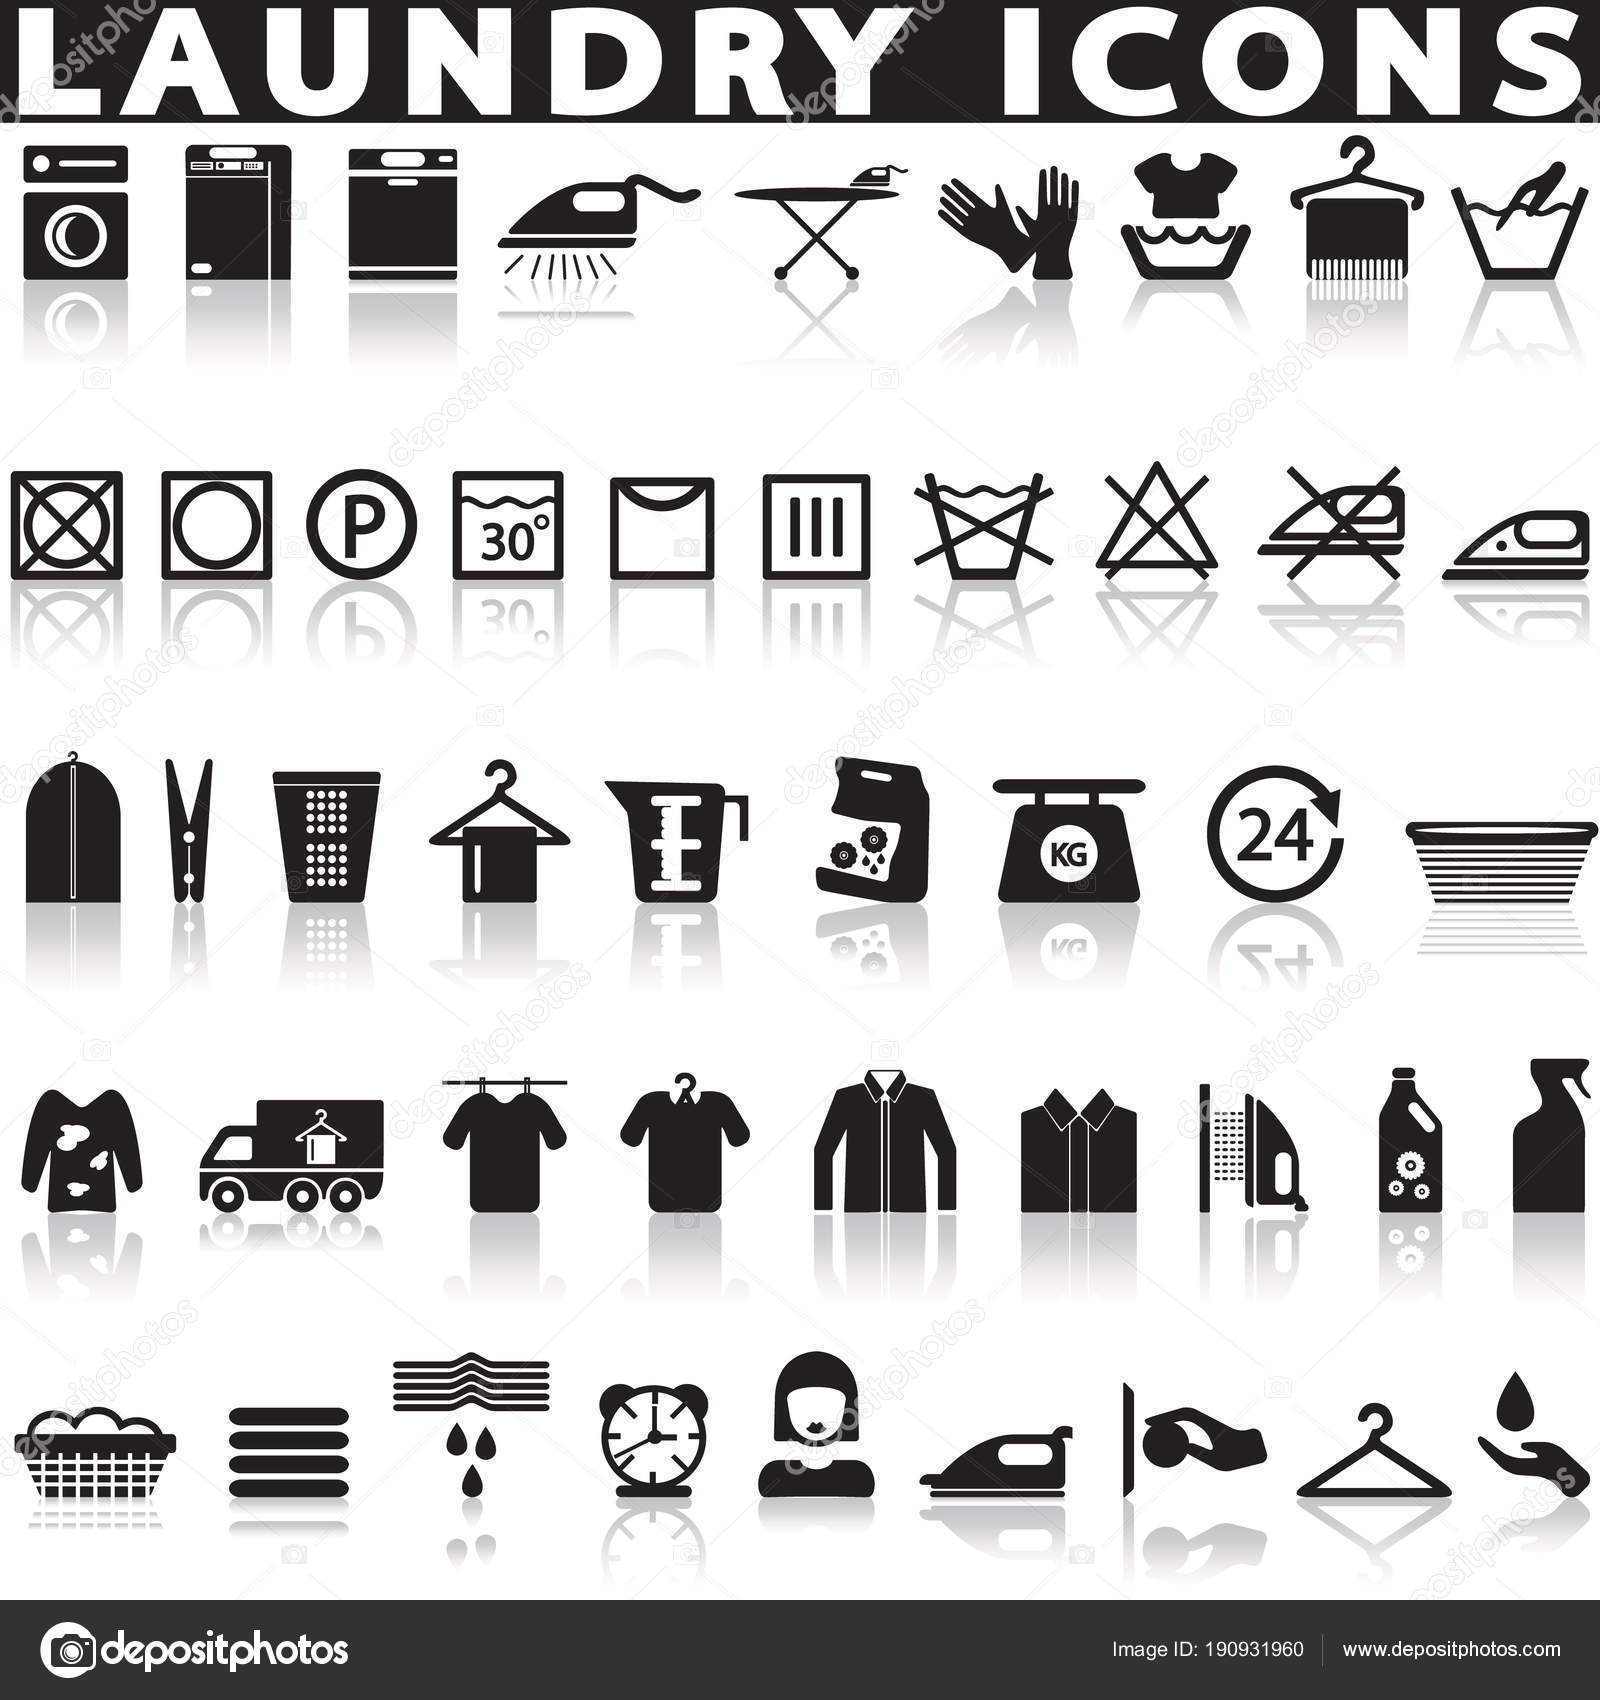 laundry washing icons white background shadow stock vector